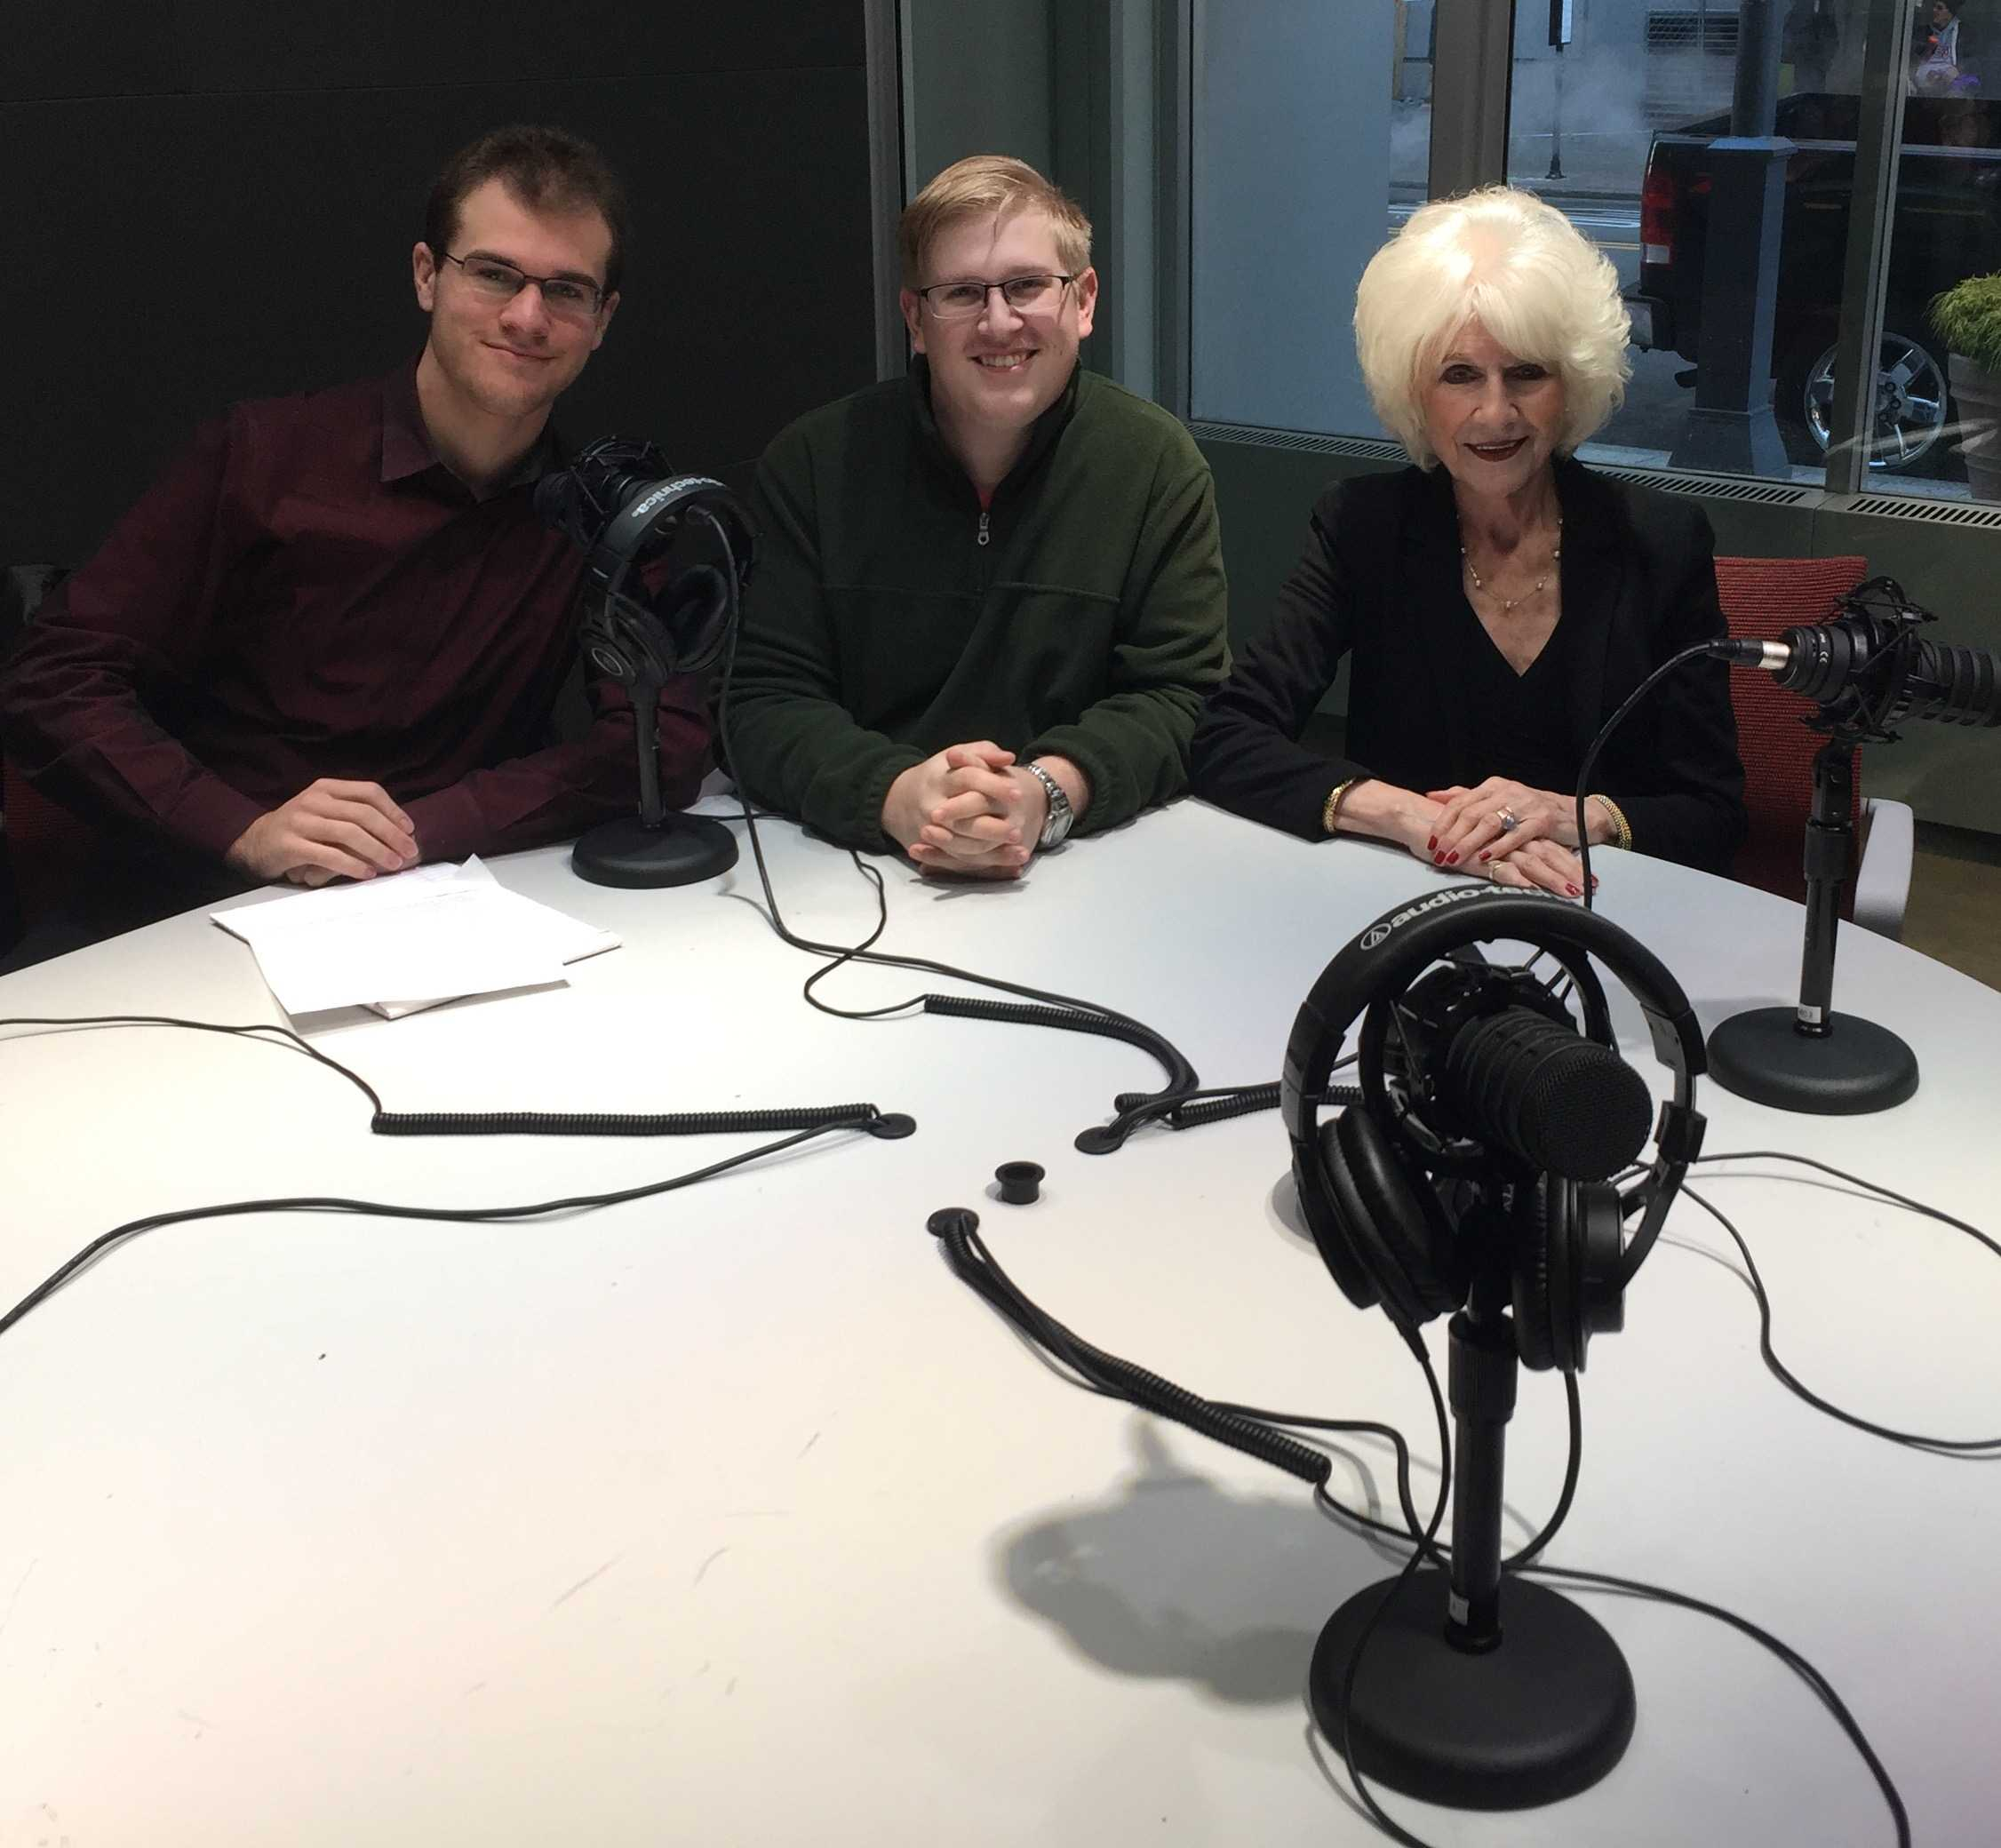 Sam Morrison, left, sophomore broadcast production and media management major and productions director at WPPJ-AM, Alexander Popichak, sophomore broadcast production and media management major and editor-elect of the Globe with Diane Rehm, host of one of NPR's longest-running and most-listened-to shows 'the Diane Rehm Show.'